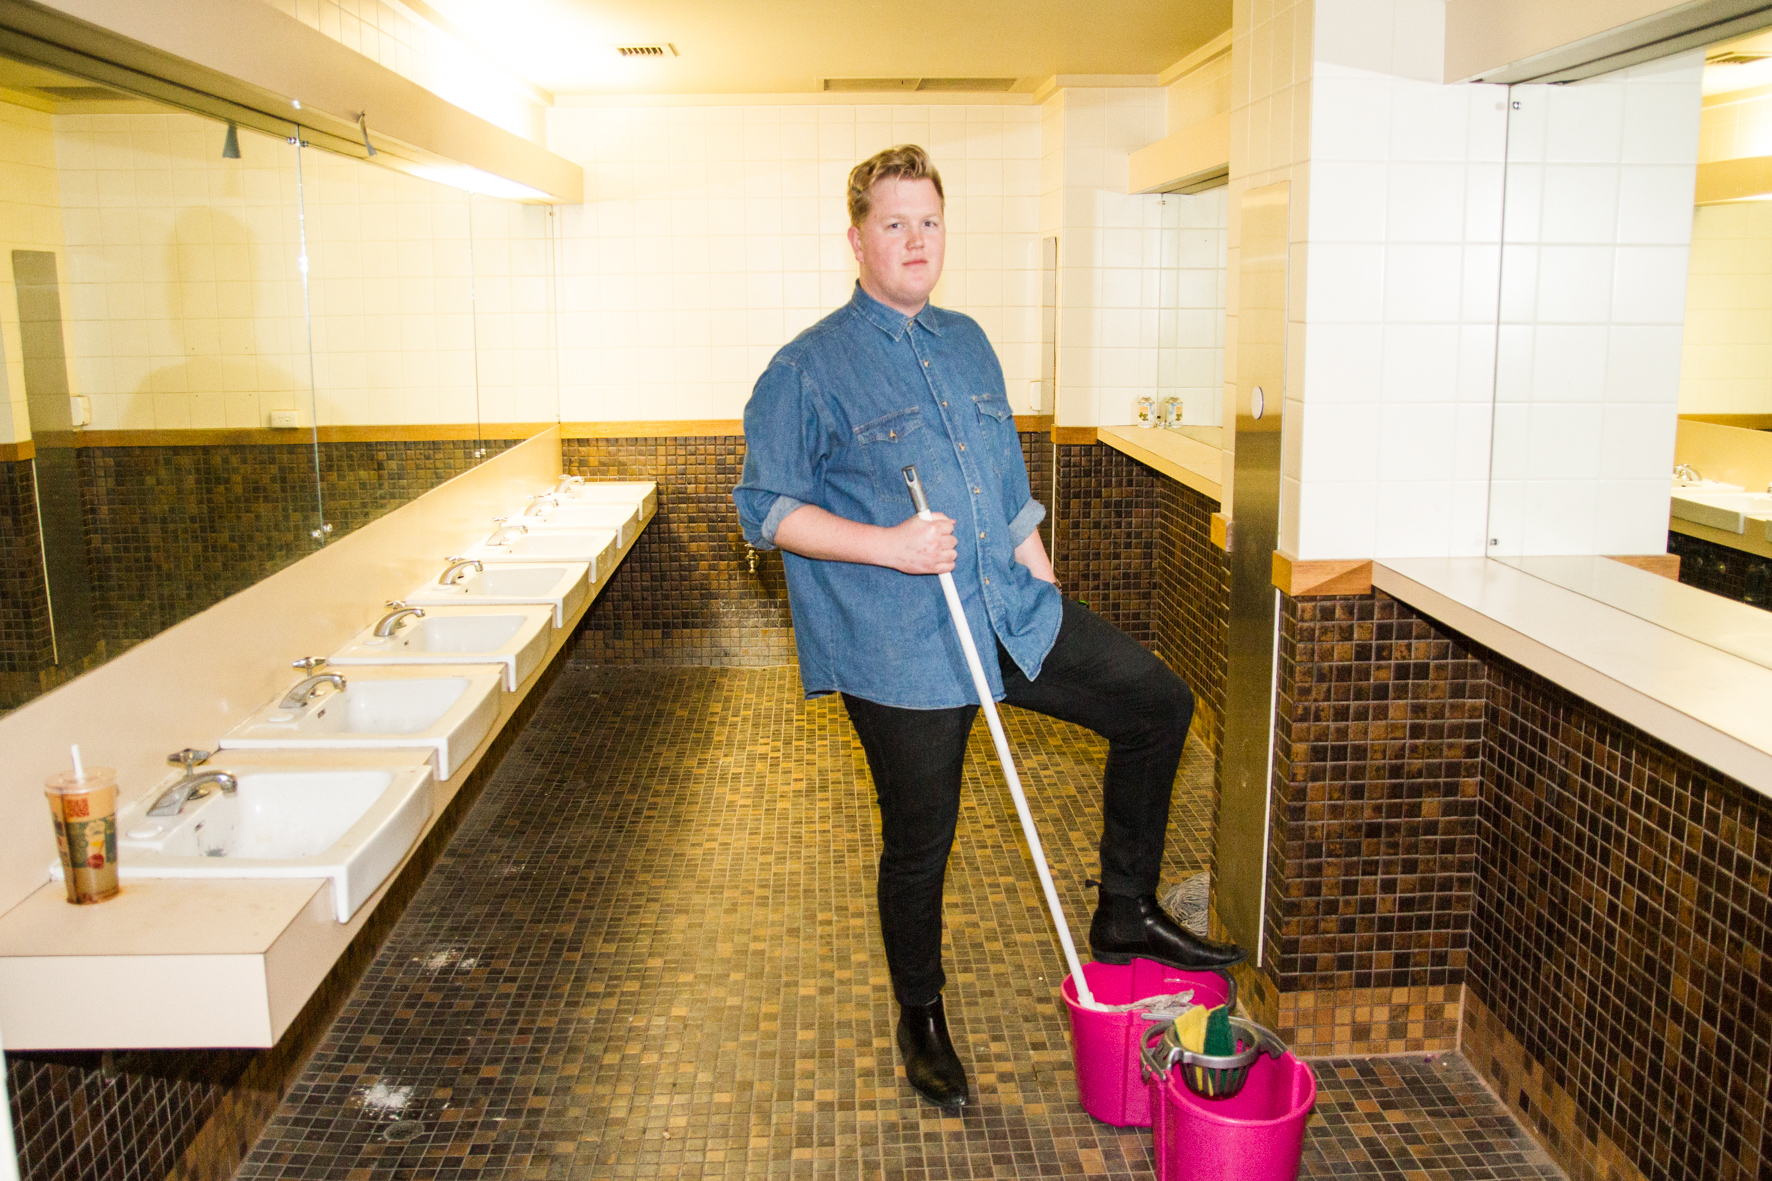 Oli Kirk poses as a cleaner on a piss break.